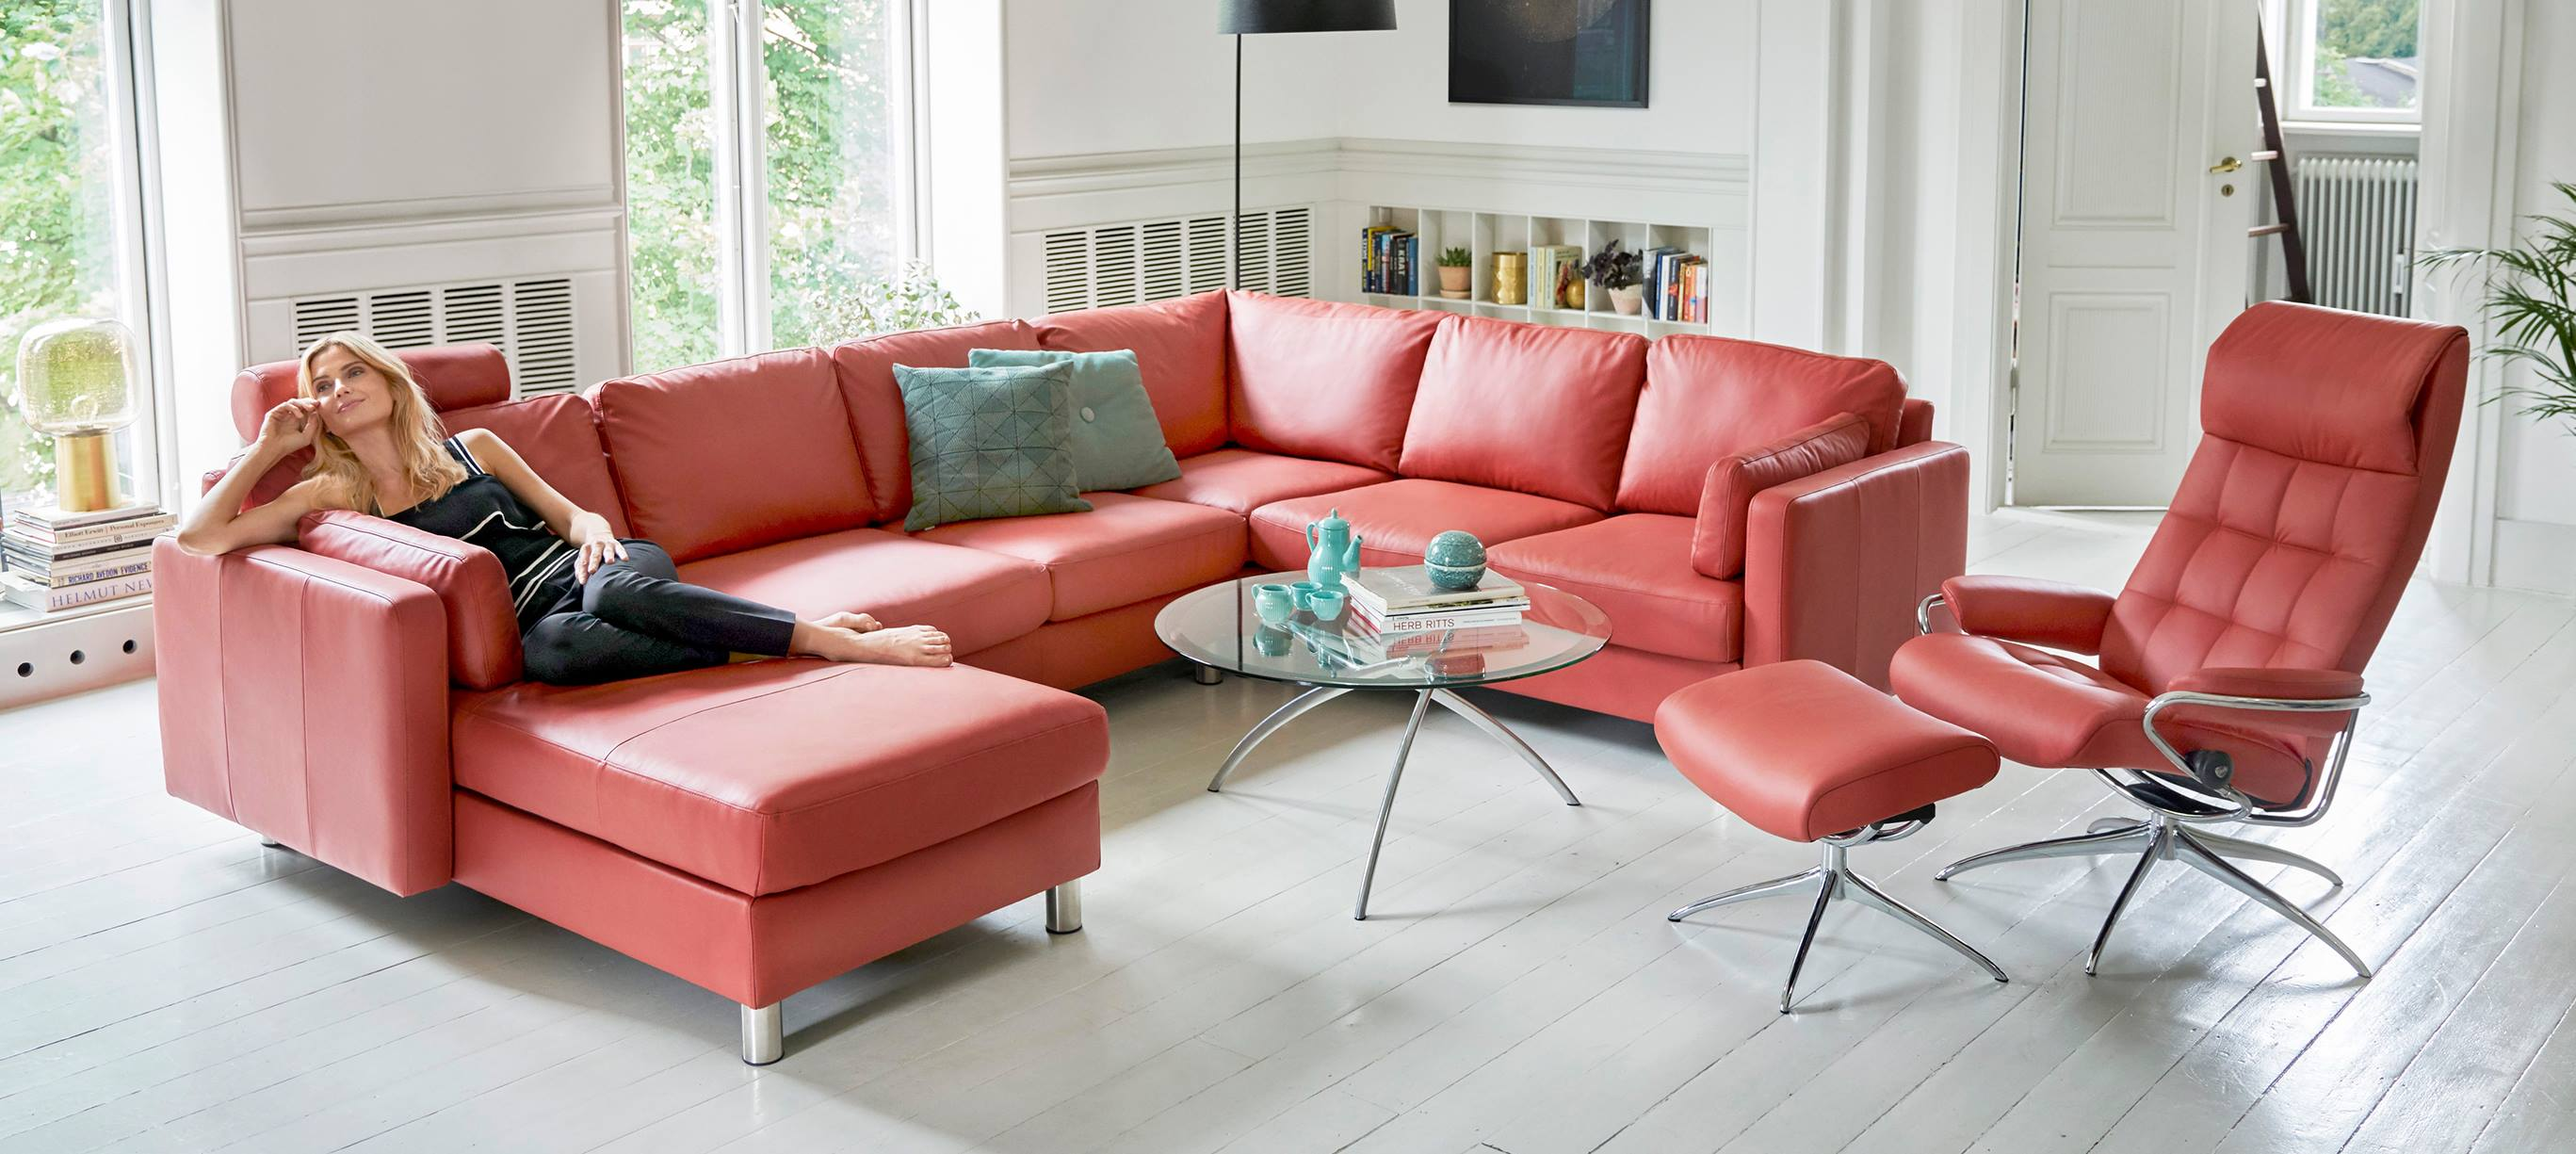 quality sofas for less cowboy leather ormes furniture  ottawa 39s store